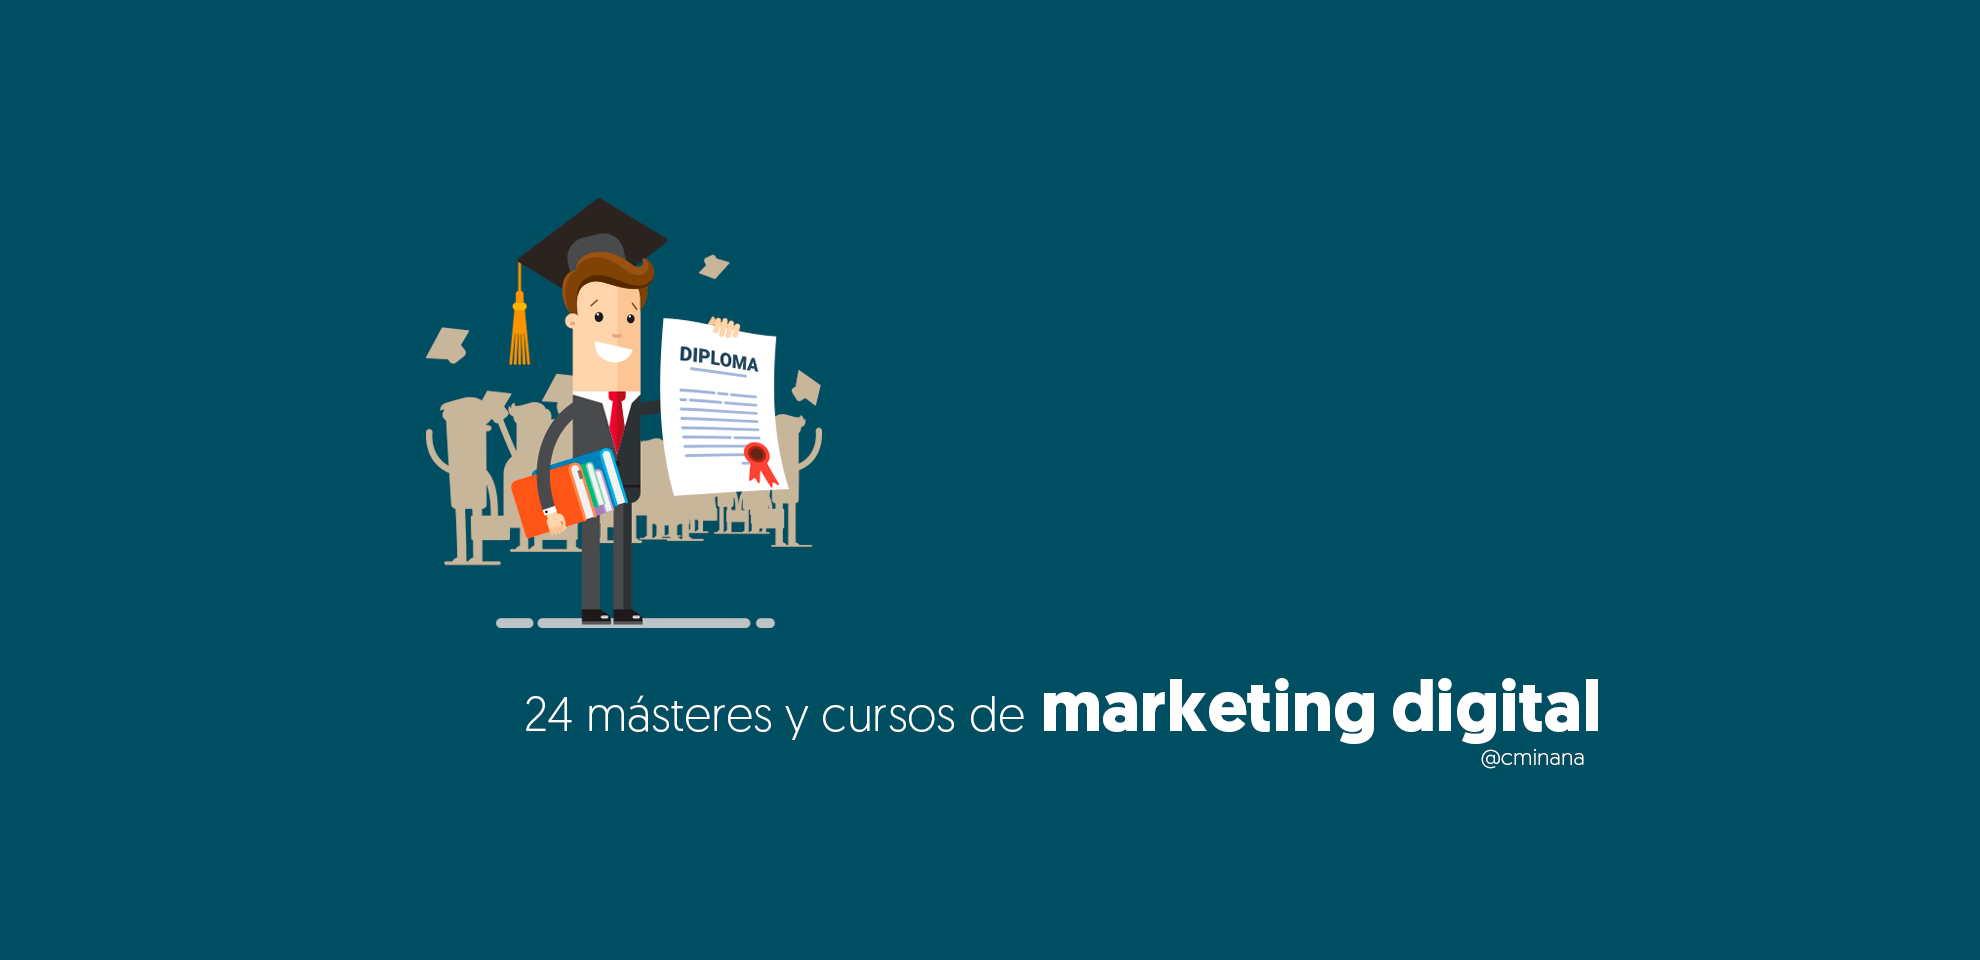 masteres cursos de marketing digital